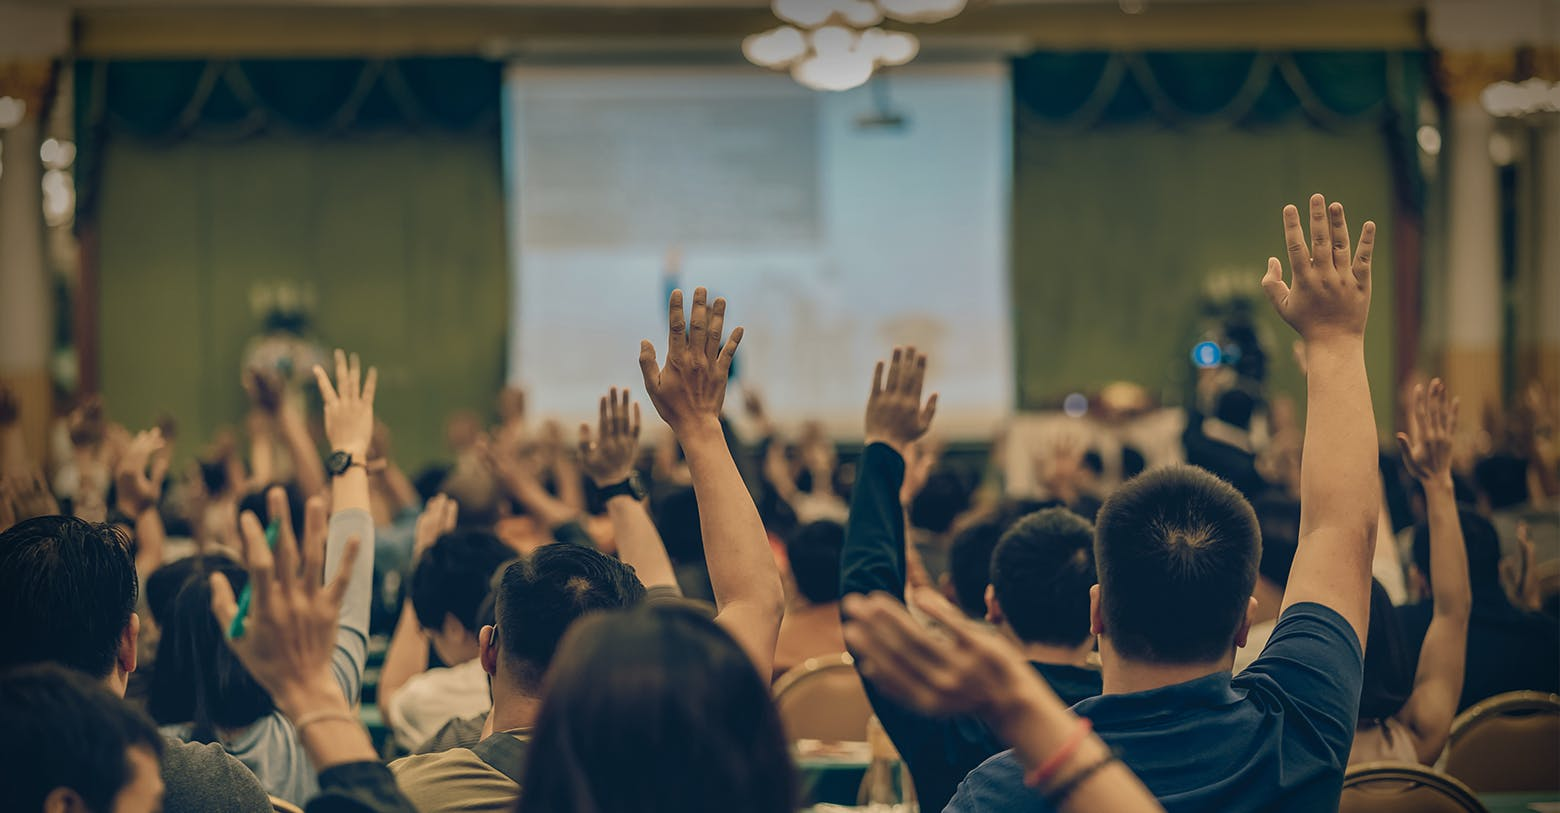 A room of people with hands in the air to ask questions